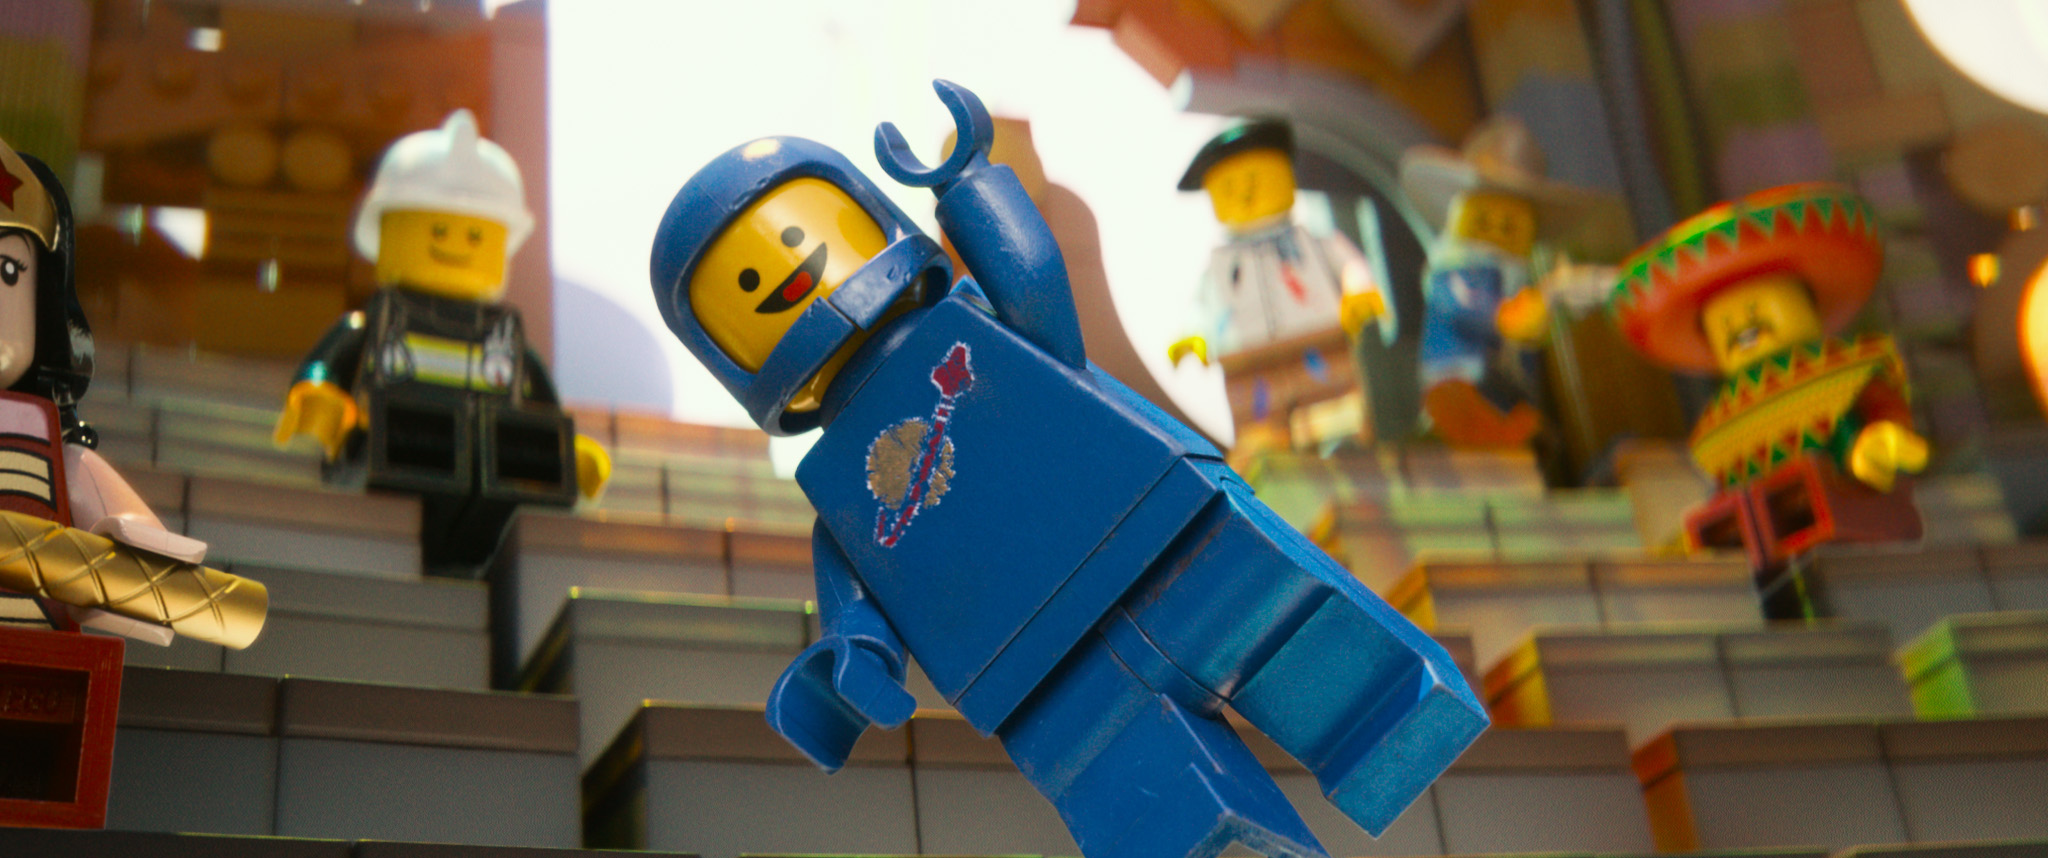 lego.com lego movie